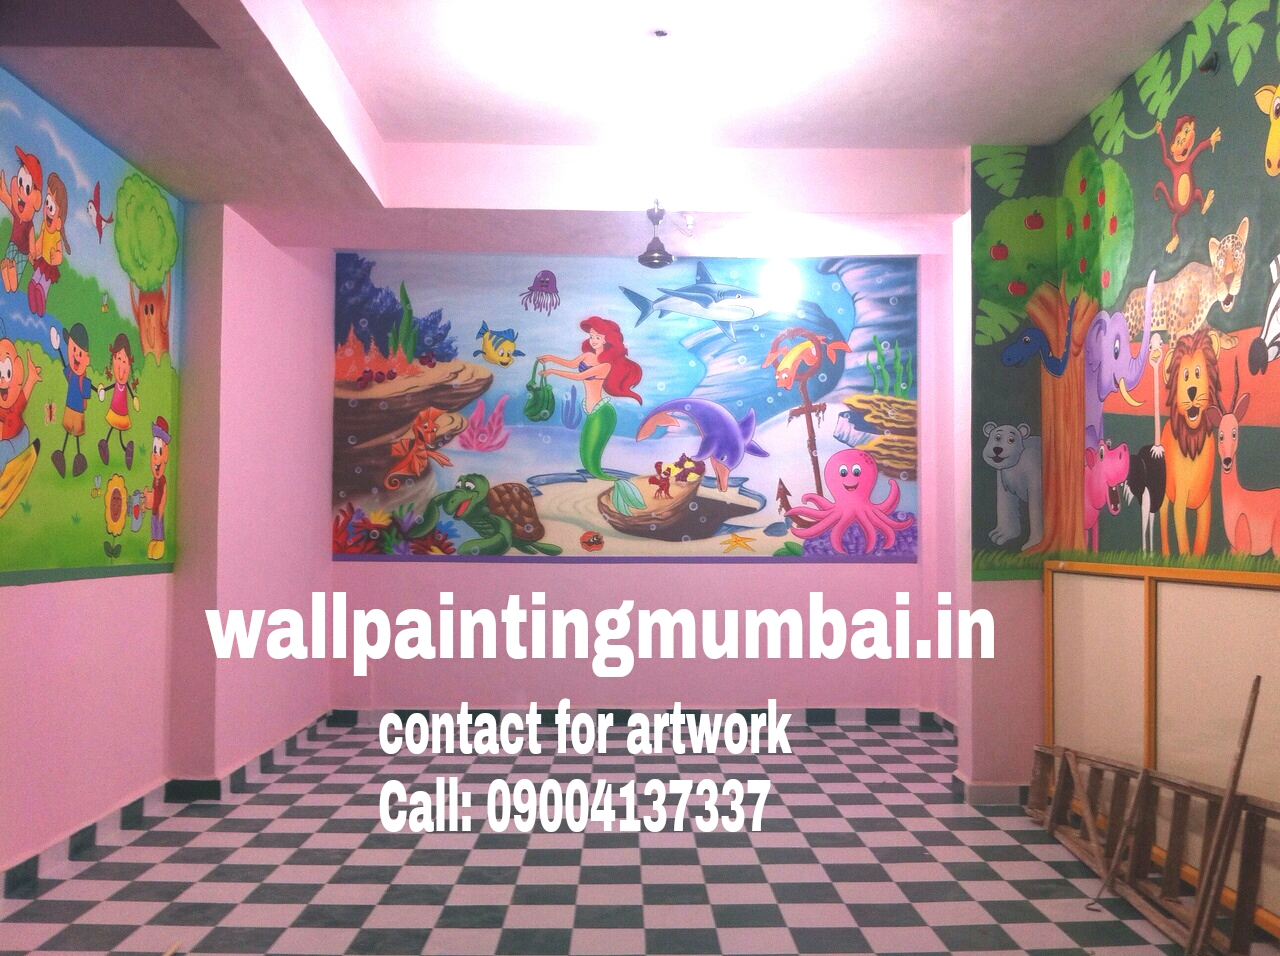 Play school wall painting playschool or preschool for Classroom wall mural